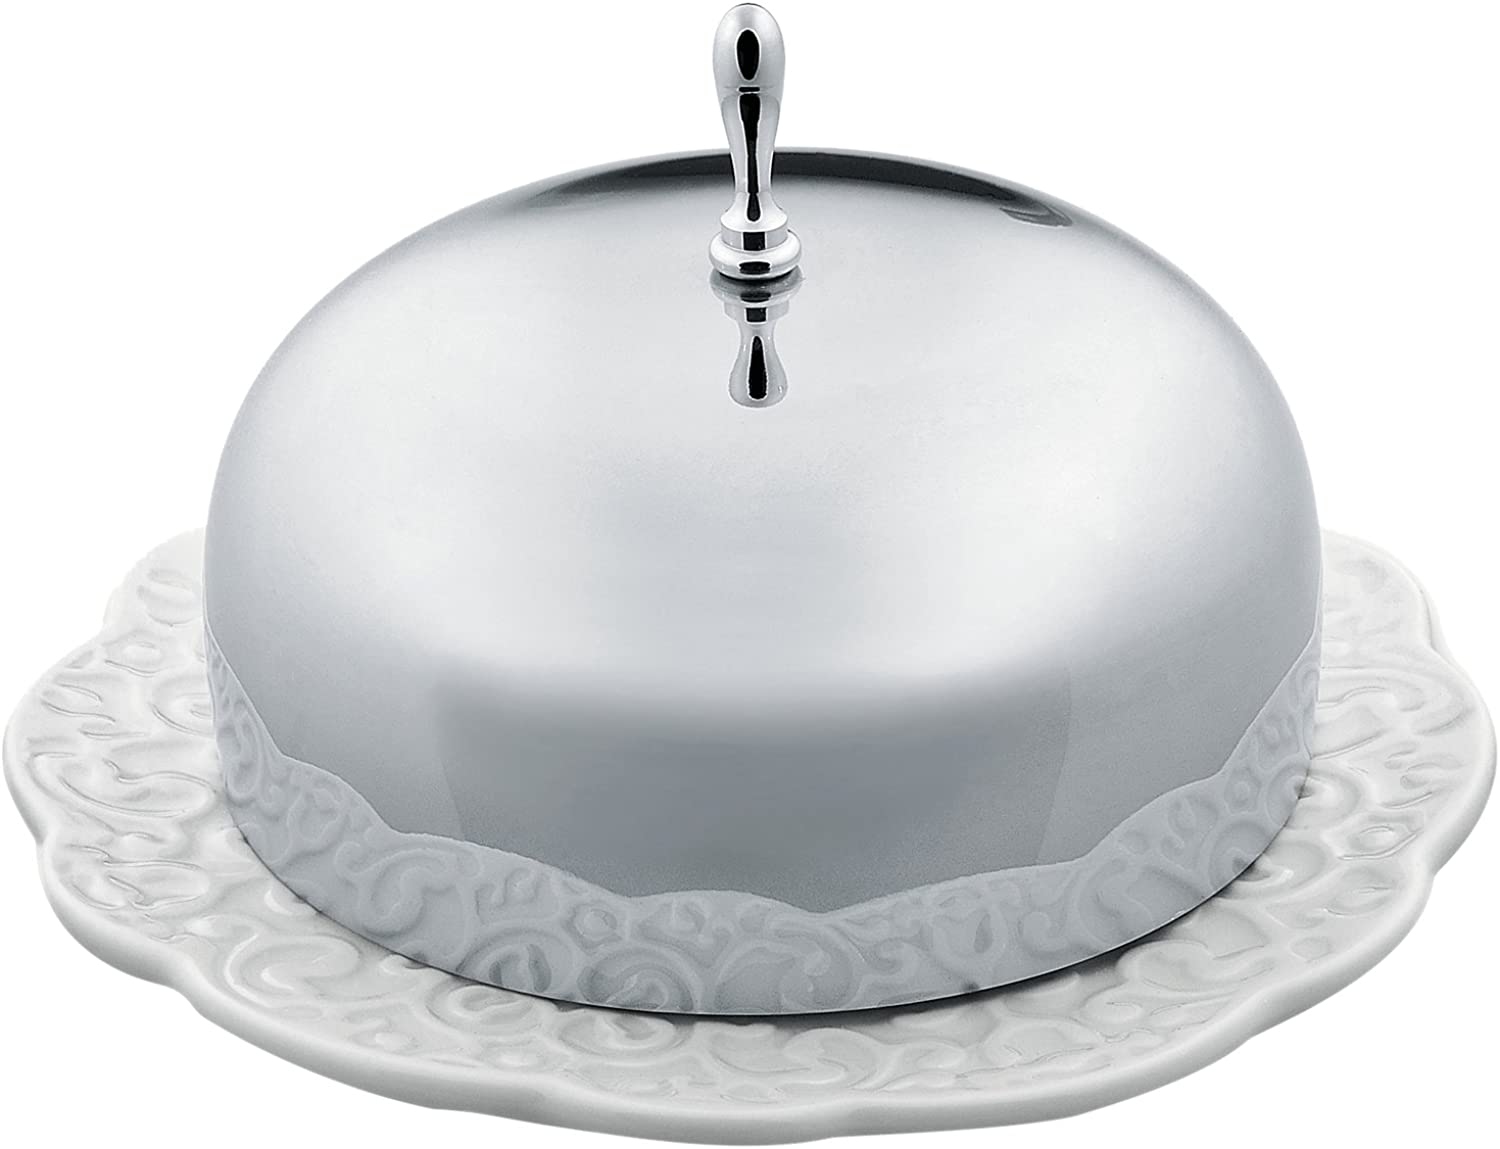 Alessi Dressed  Butter Dish in Porcelain With Lid in 18 10 Stainless Steel Mirror Polished, White